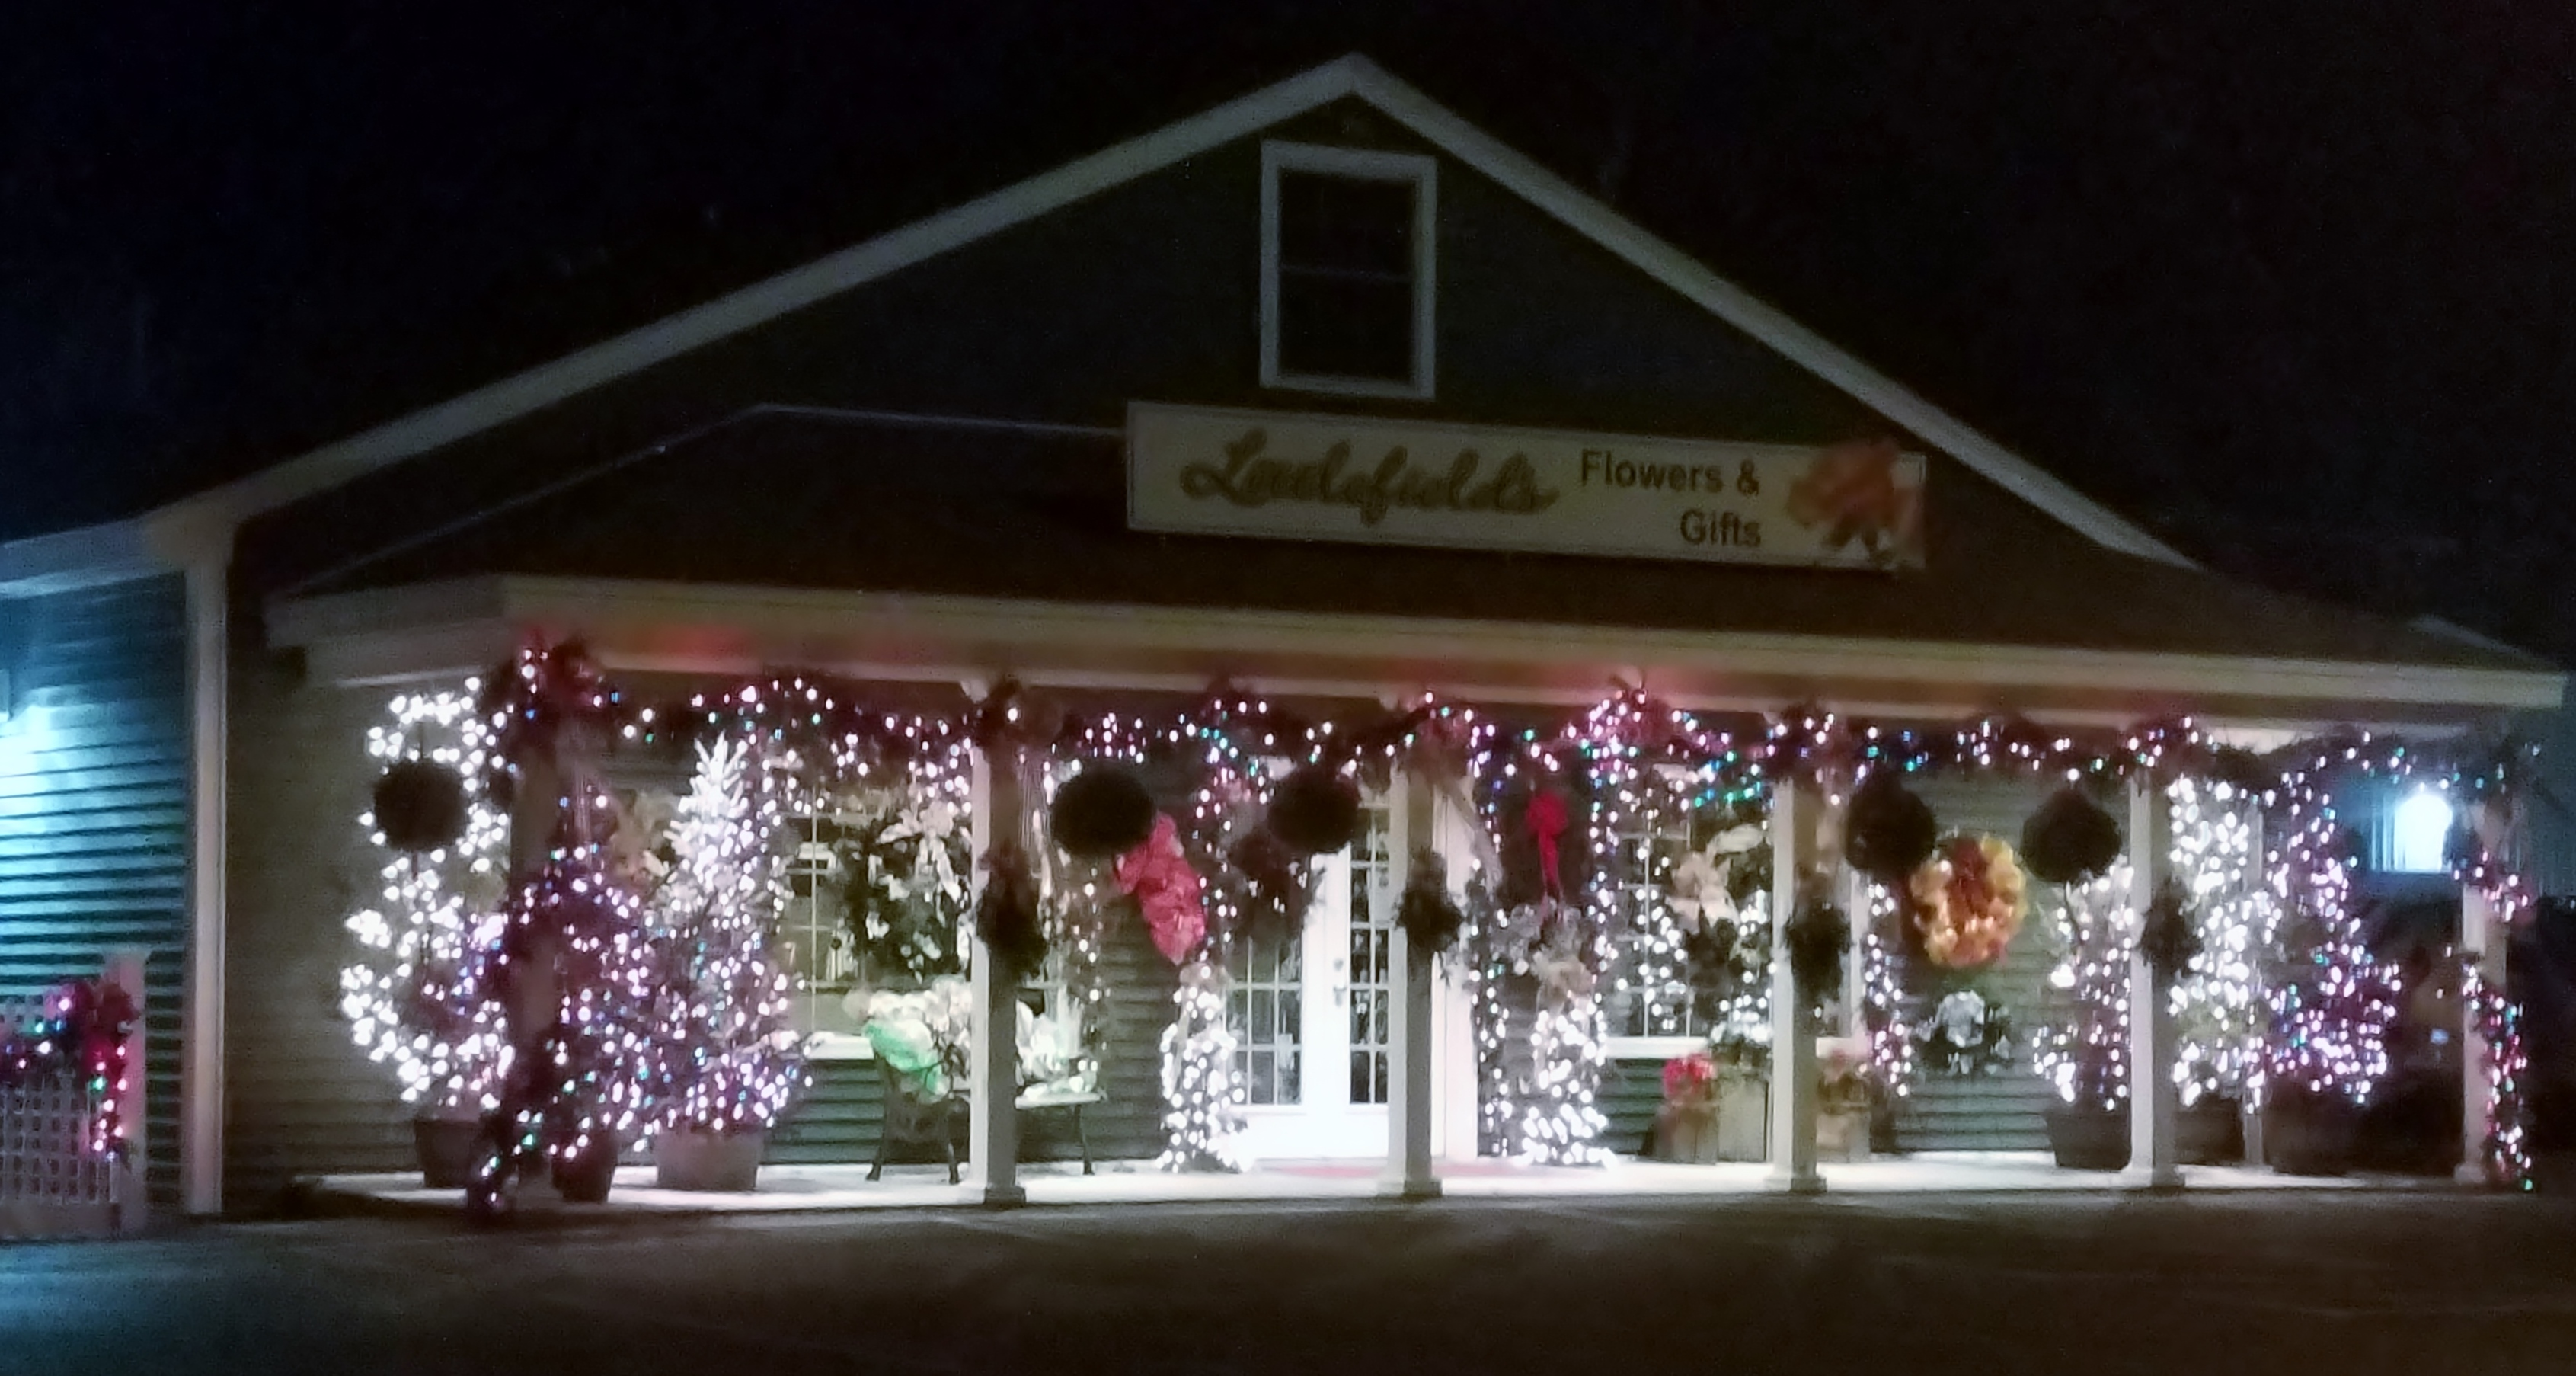 Littlefields Flowers and Gift Shop